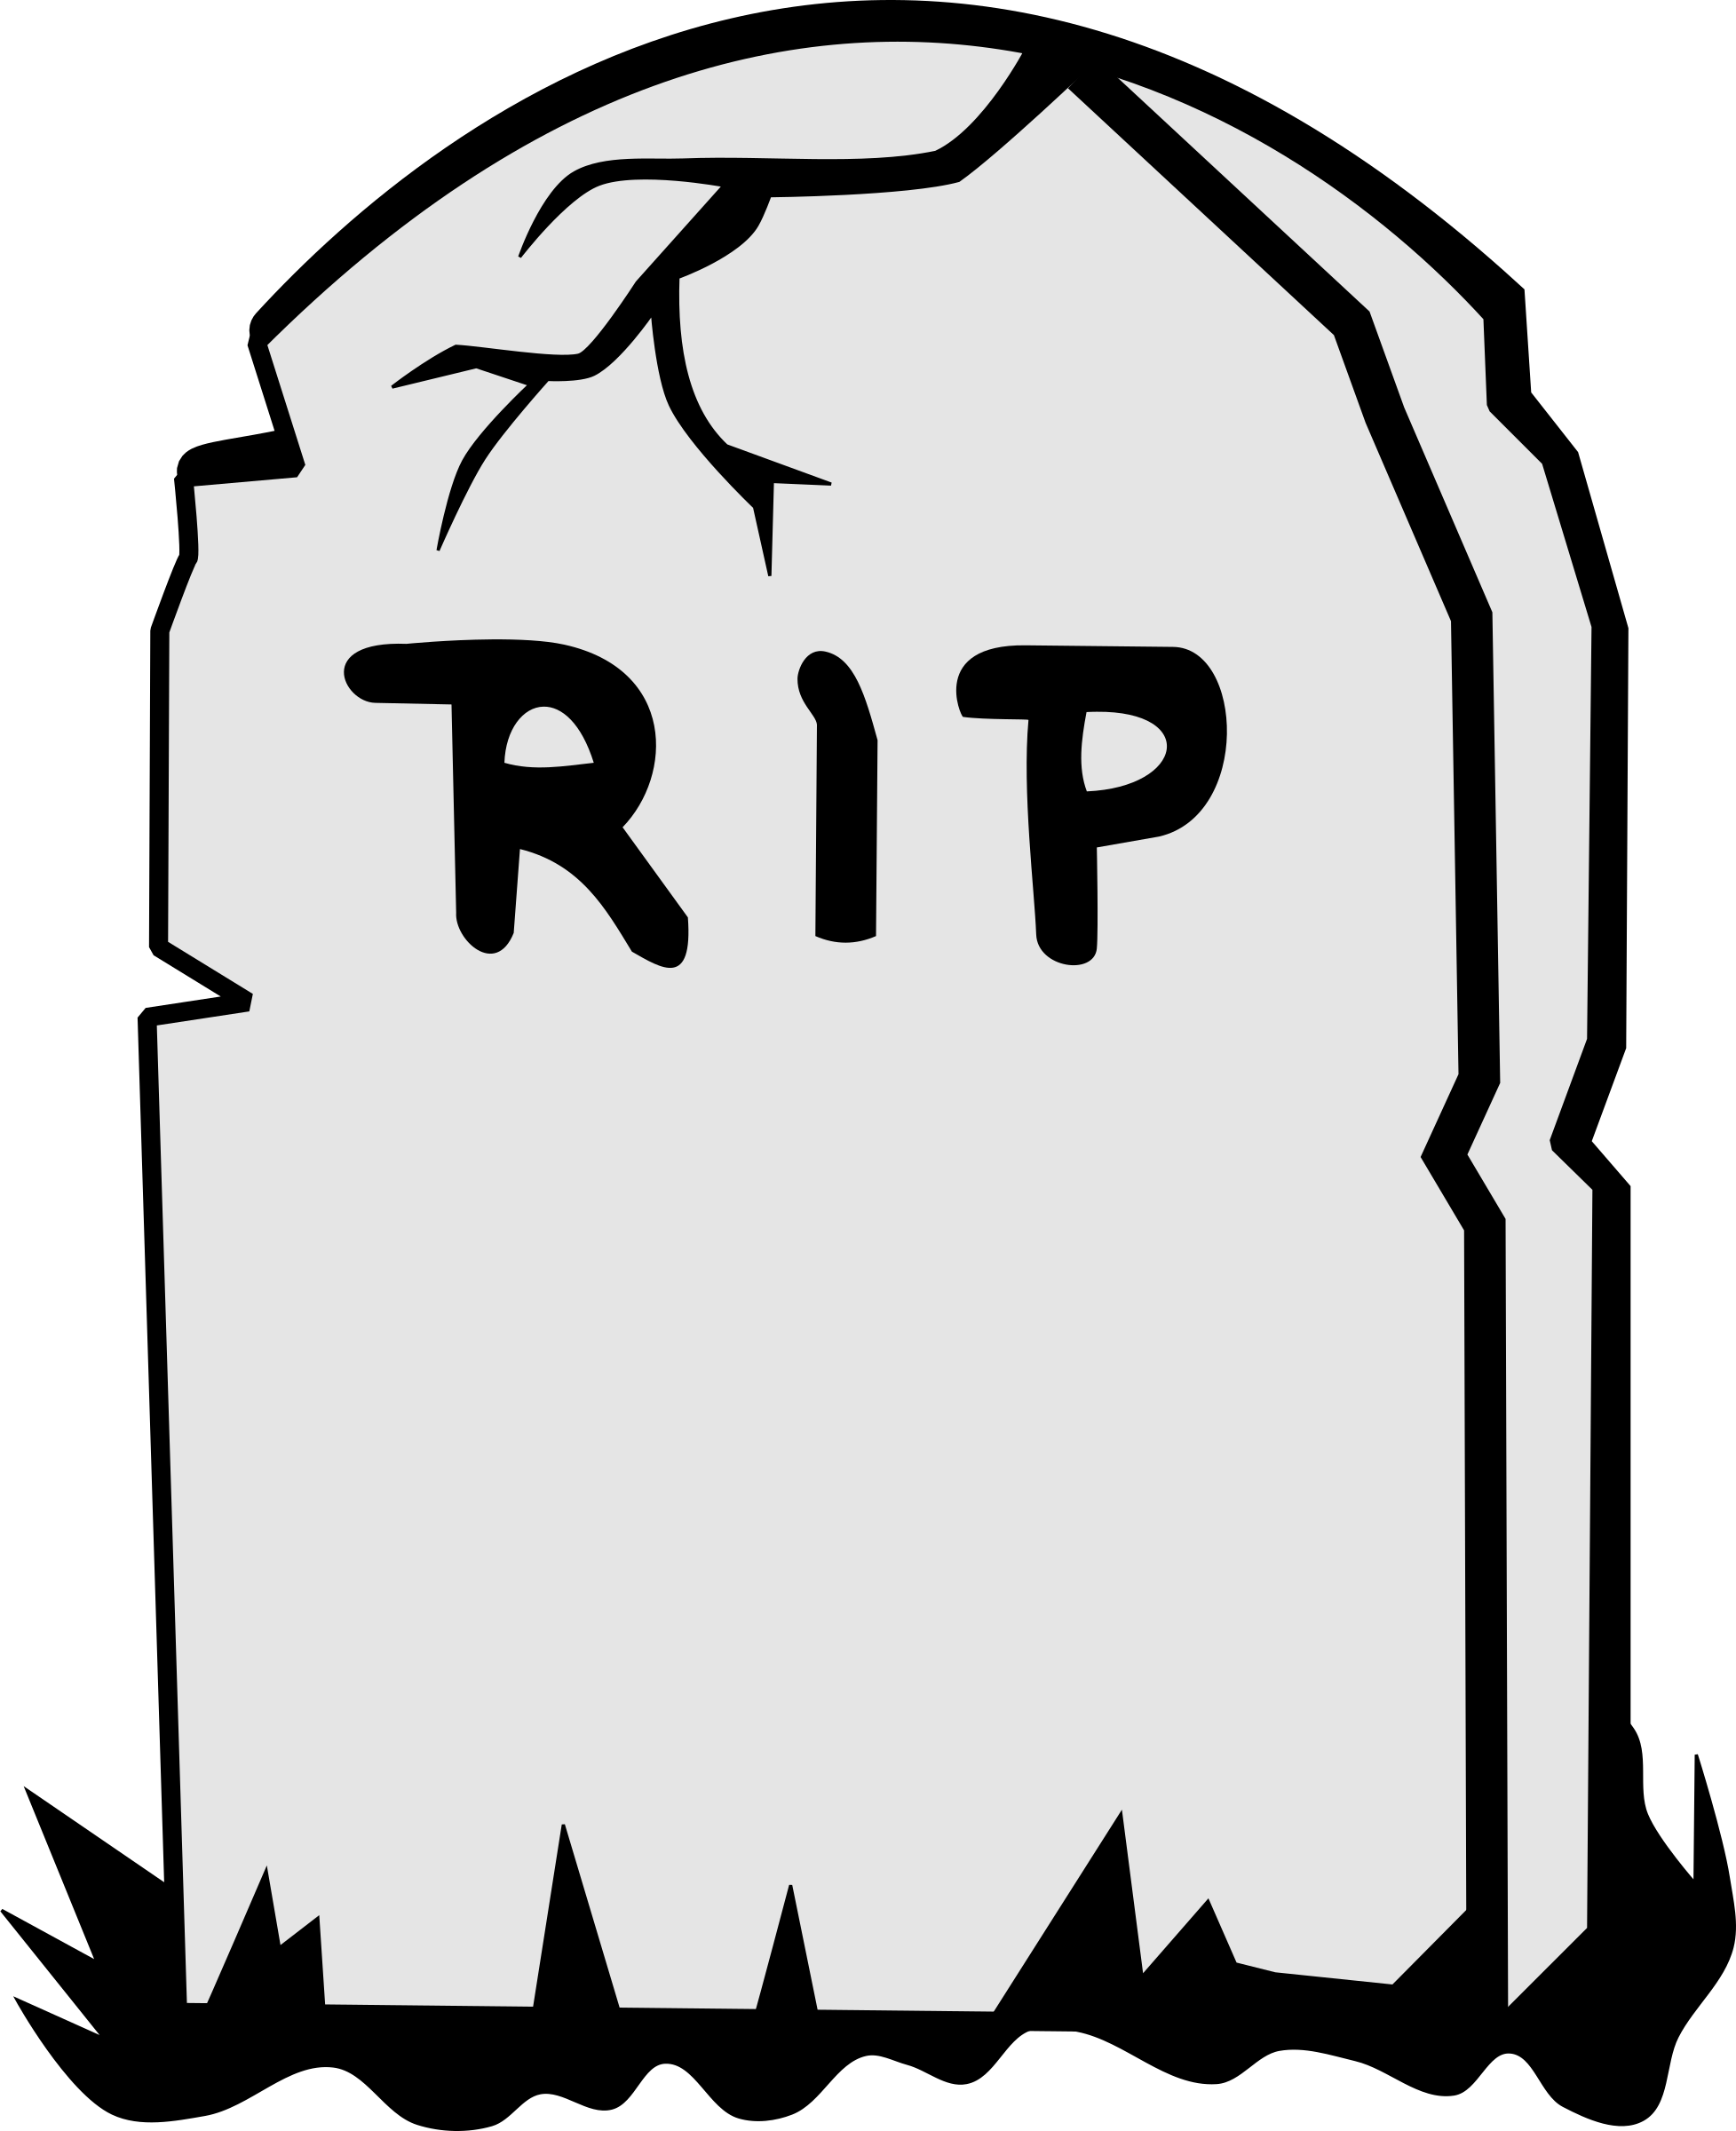 Tombstone rip clipart transparent background.